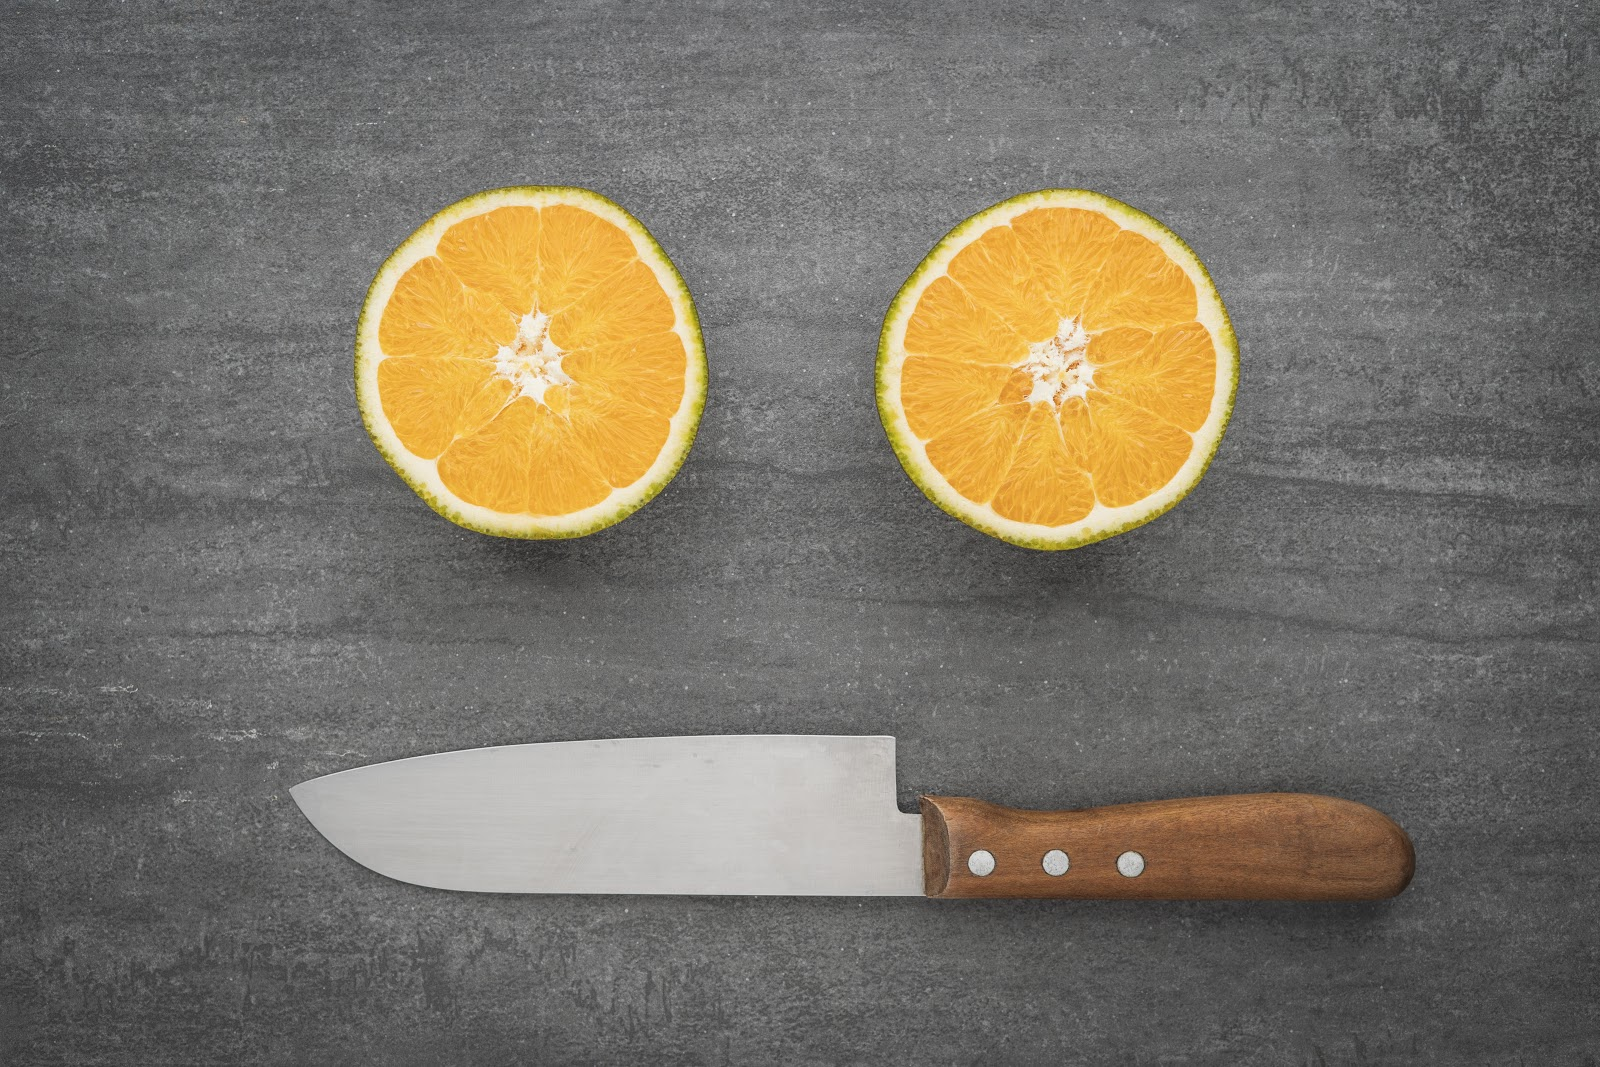 Two halves of an orange lay cut-face up on a table with a knife.